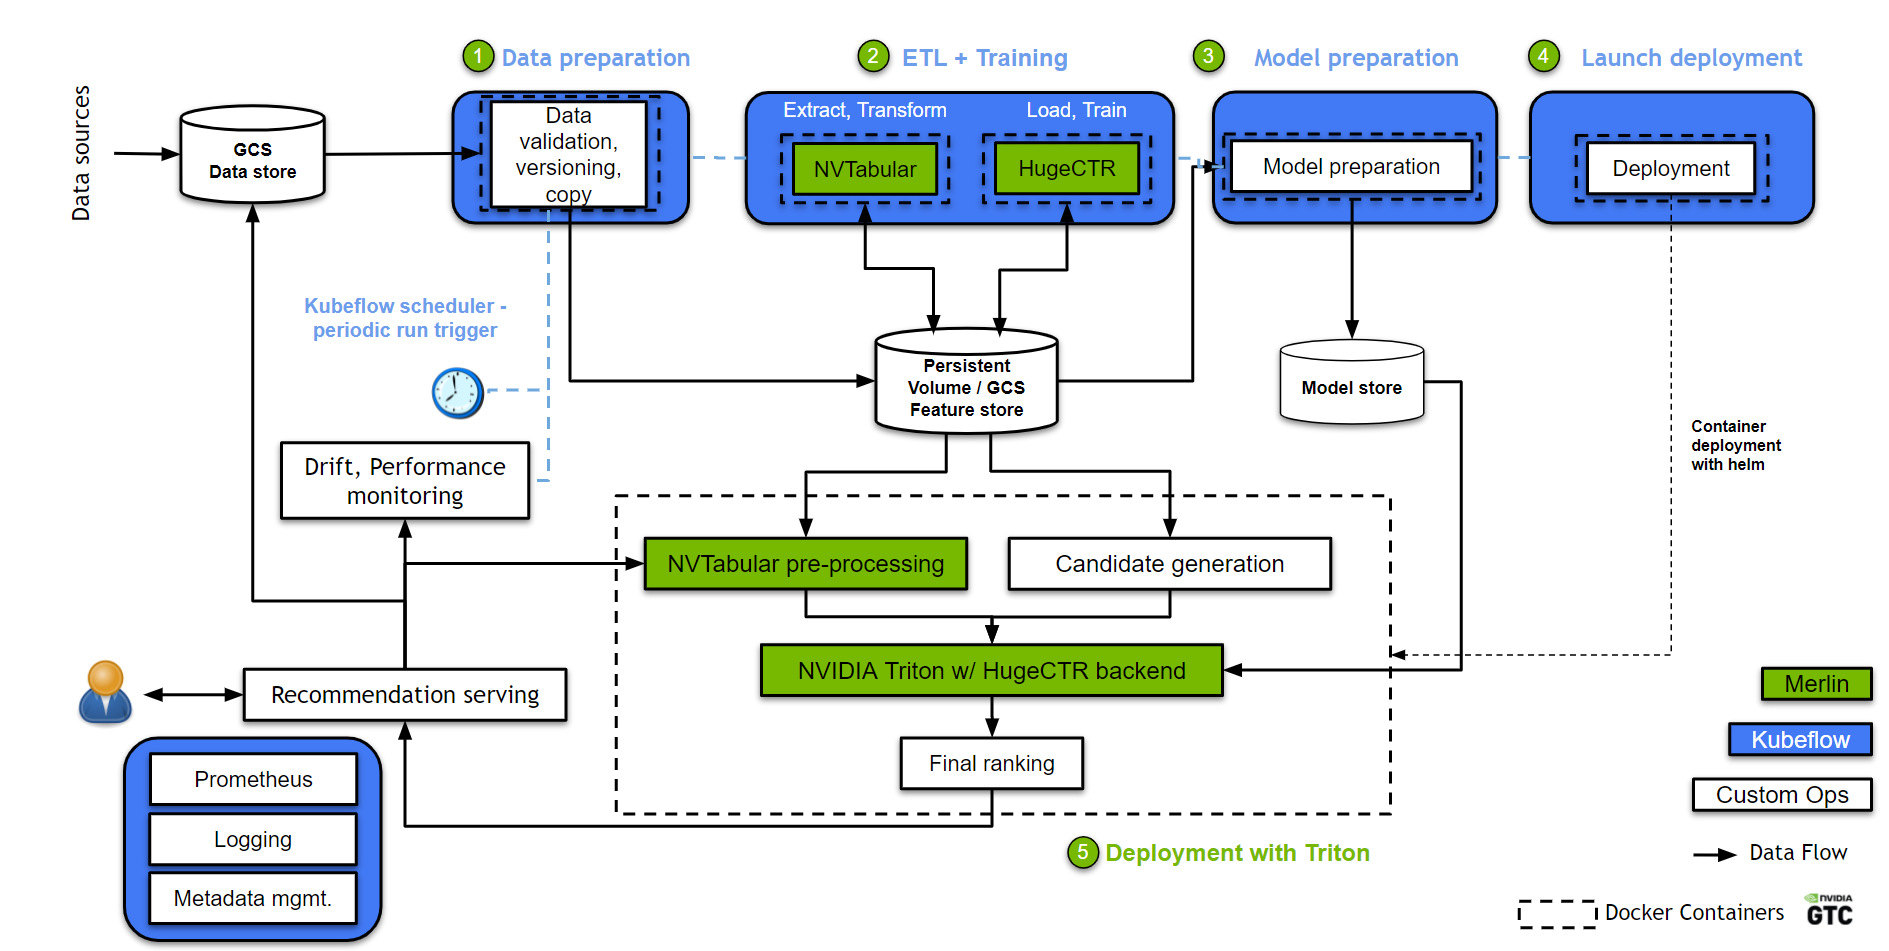 Figure shows a reference architecture of a recommender system MLOps pipeline built with NVIDIA Merlin to accelerate all phases of recommender system development on GPUs. It uses Kubeflow to orchestrate the pipeline components on Google Kubernetes Engine (GKE).